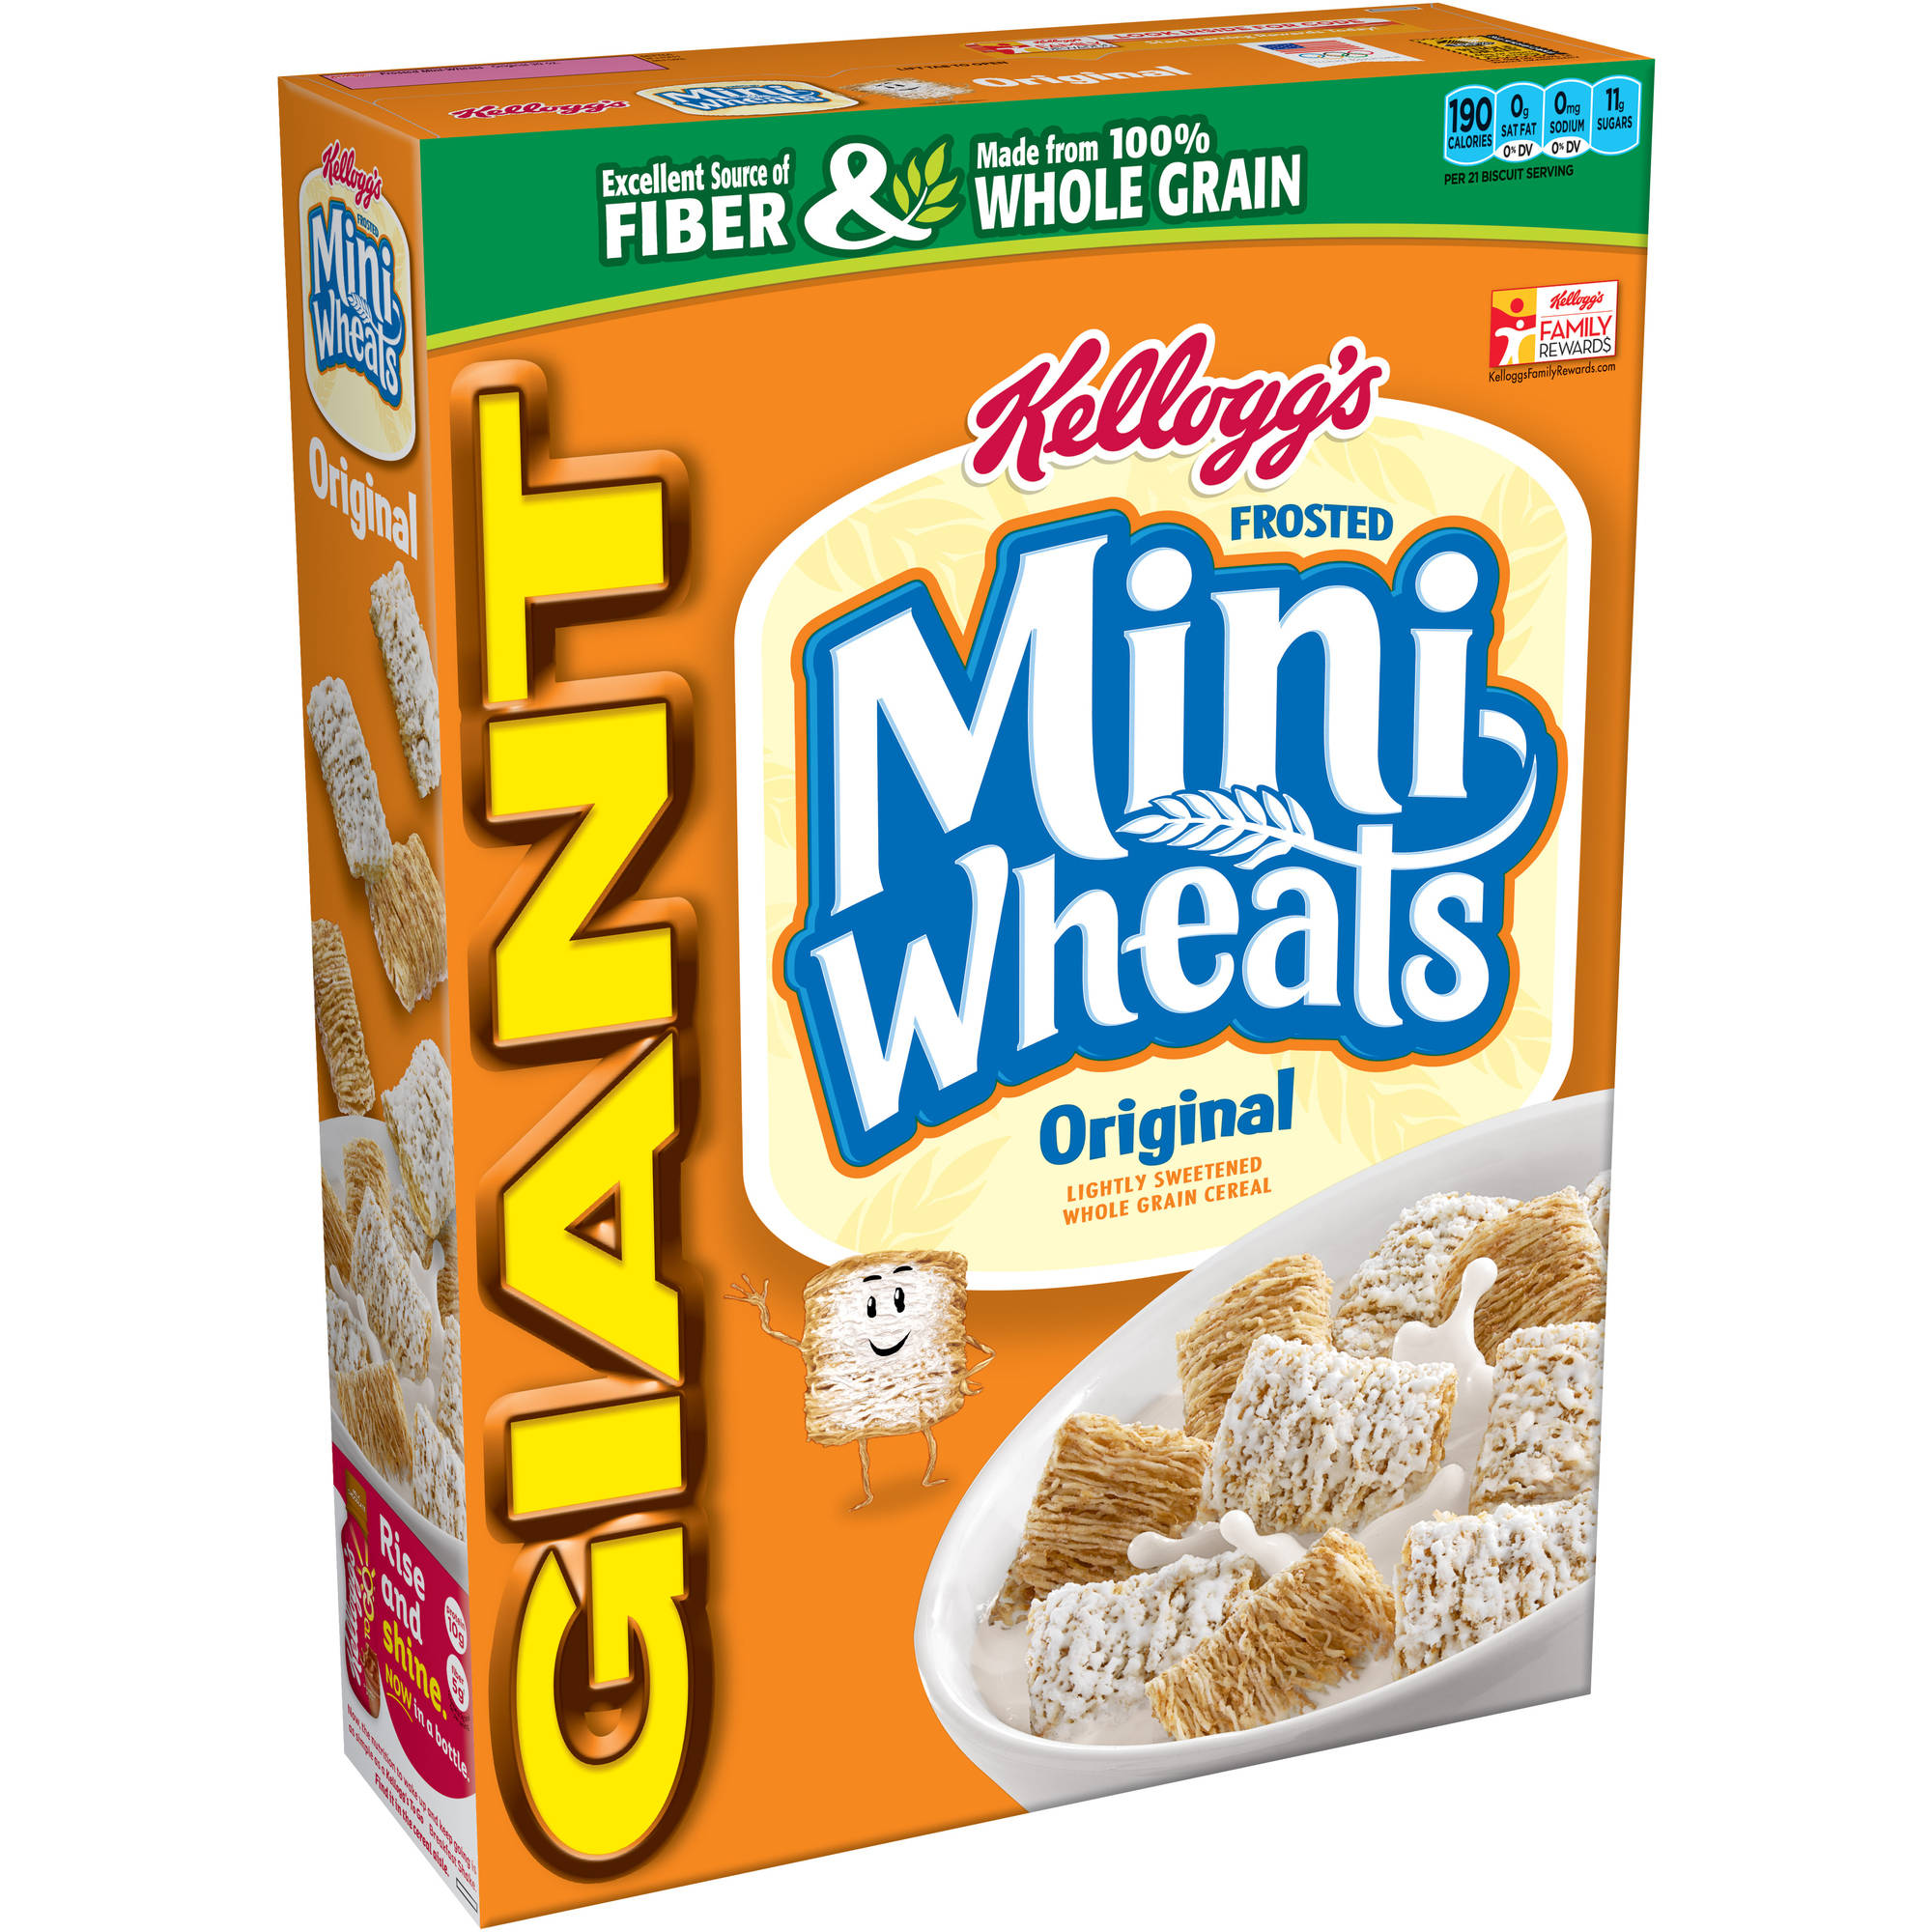 Kellogg's Original Frosted Mini Wheats Cereal, 36 oz